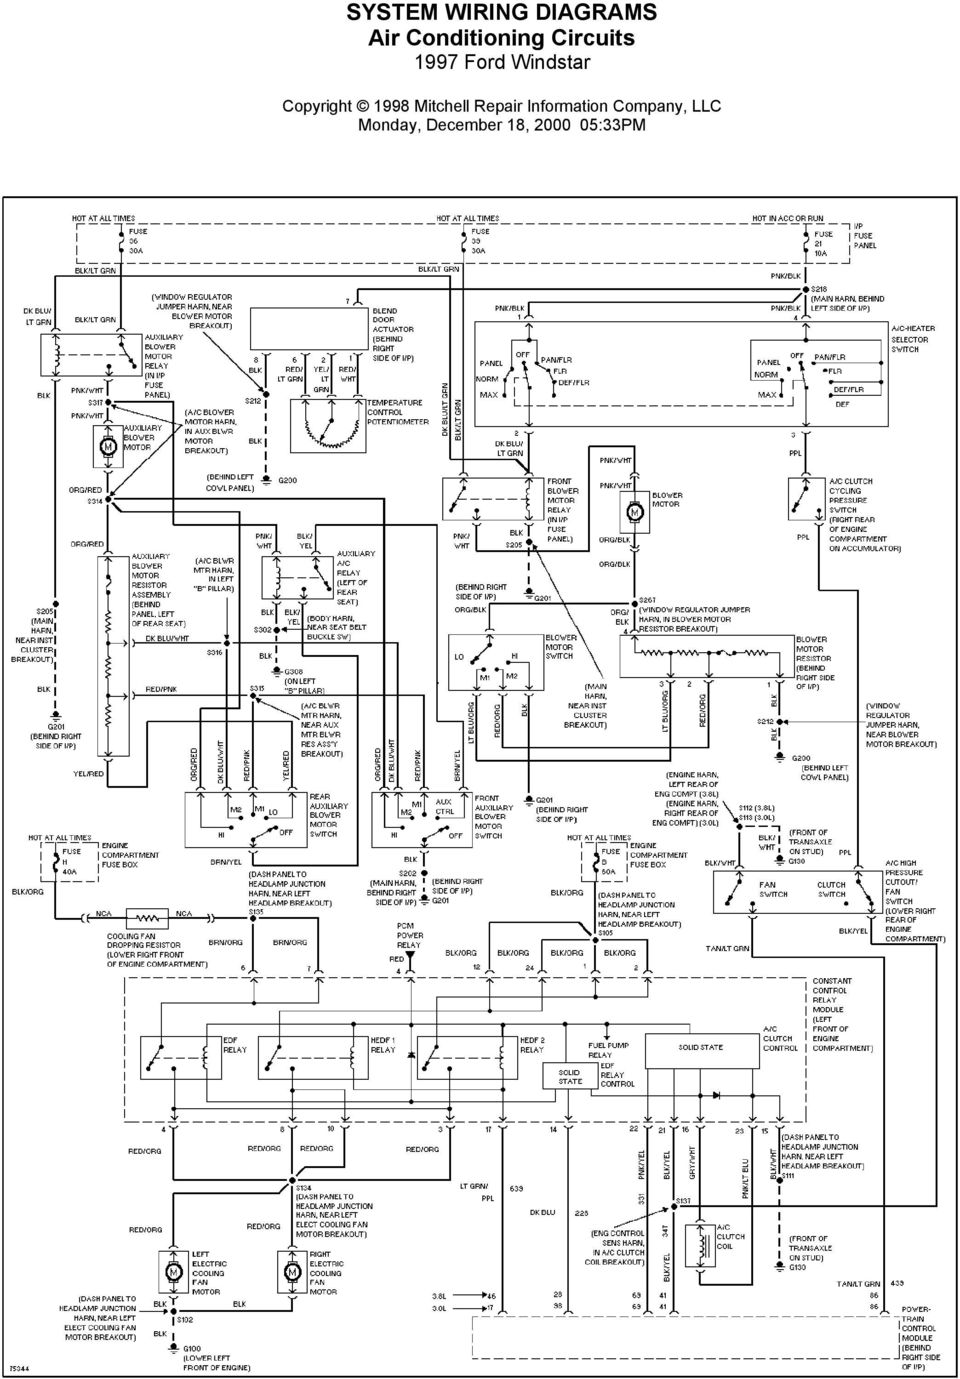 System Wiring Diagrams Air Conditioning Circuits 1997 Ford Windstar Toyota Lucida Diagram Pdf